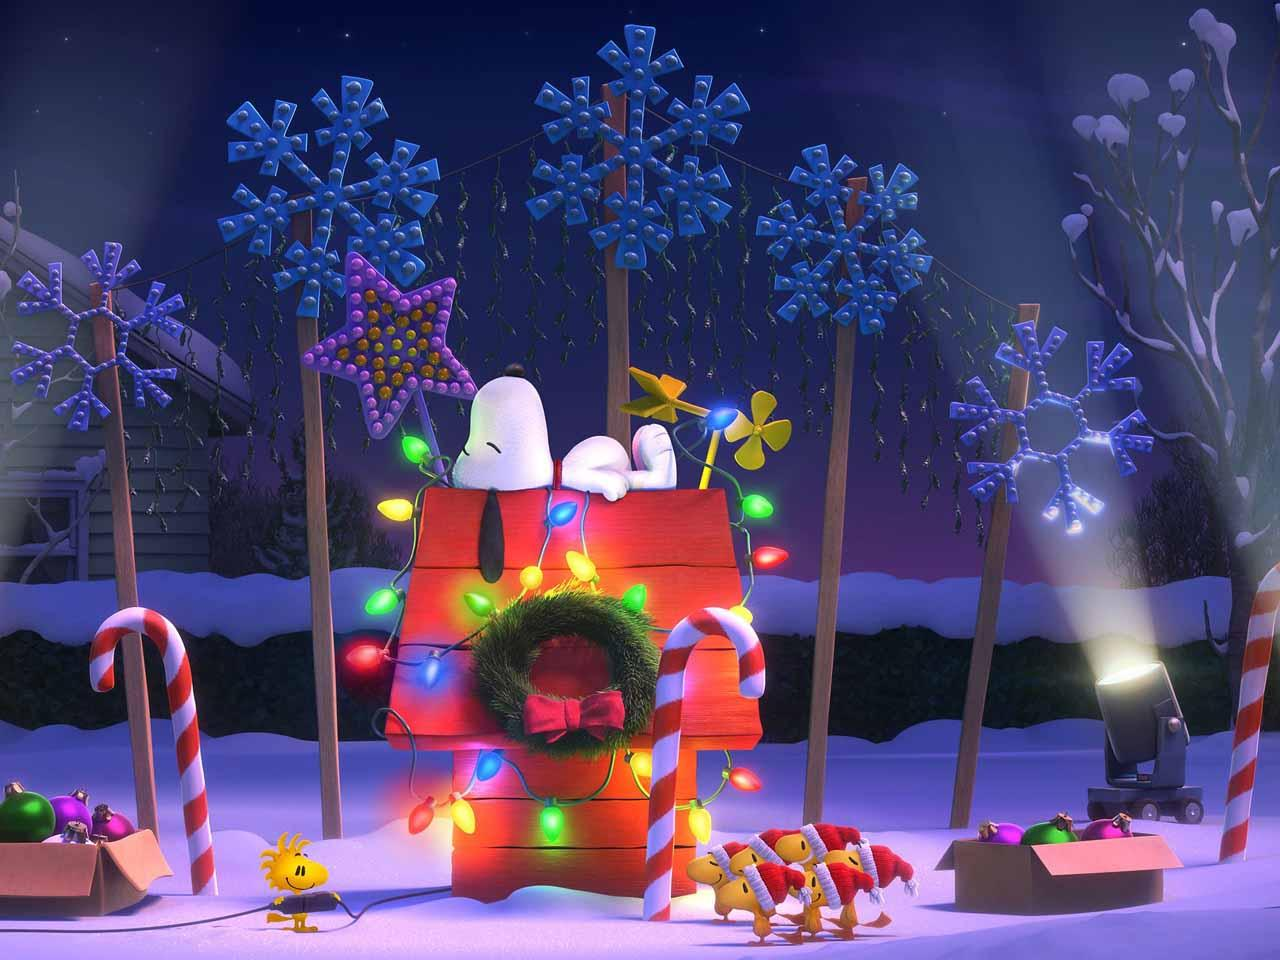 peanuts---snoopy-and-friends_Cinema_267